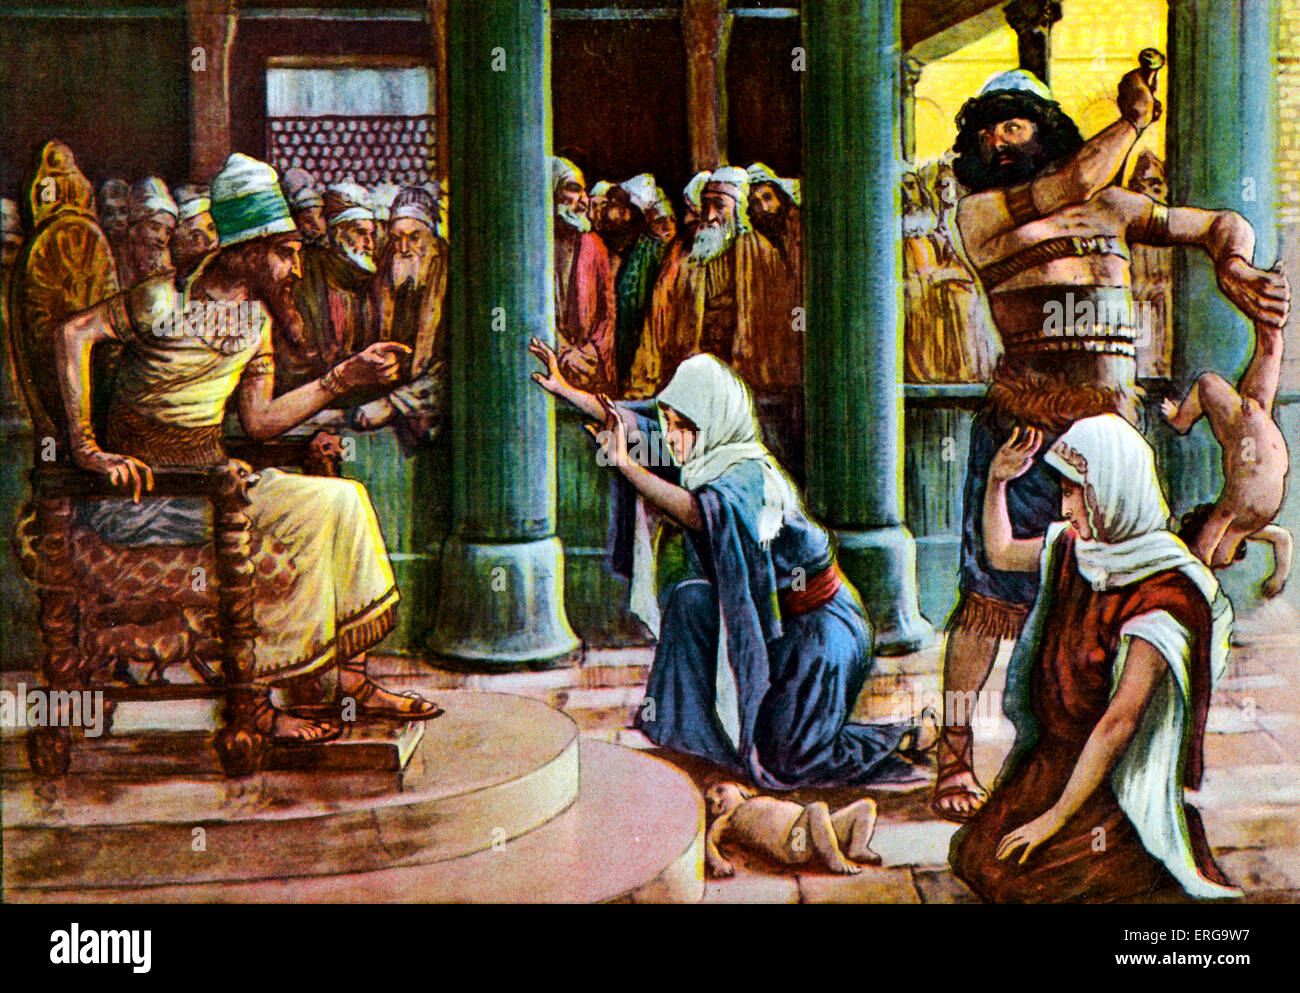 The Wisdom of Solomon  - after J James Tissot. Illustration of Book of Kings I, 3.27 : 'Then the king answered - Stock Image